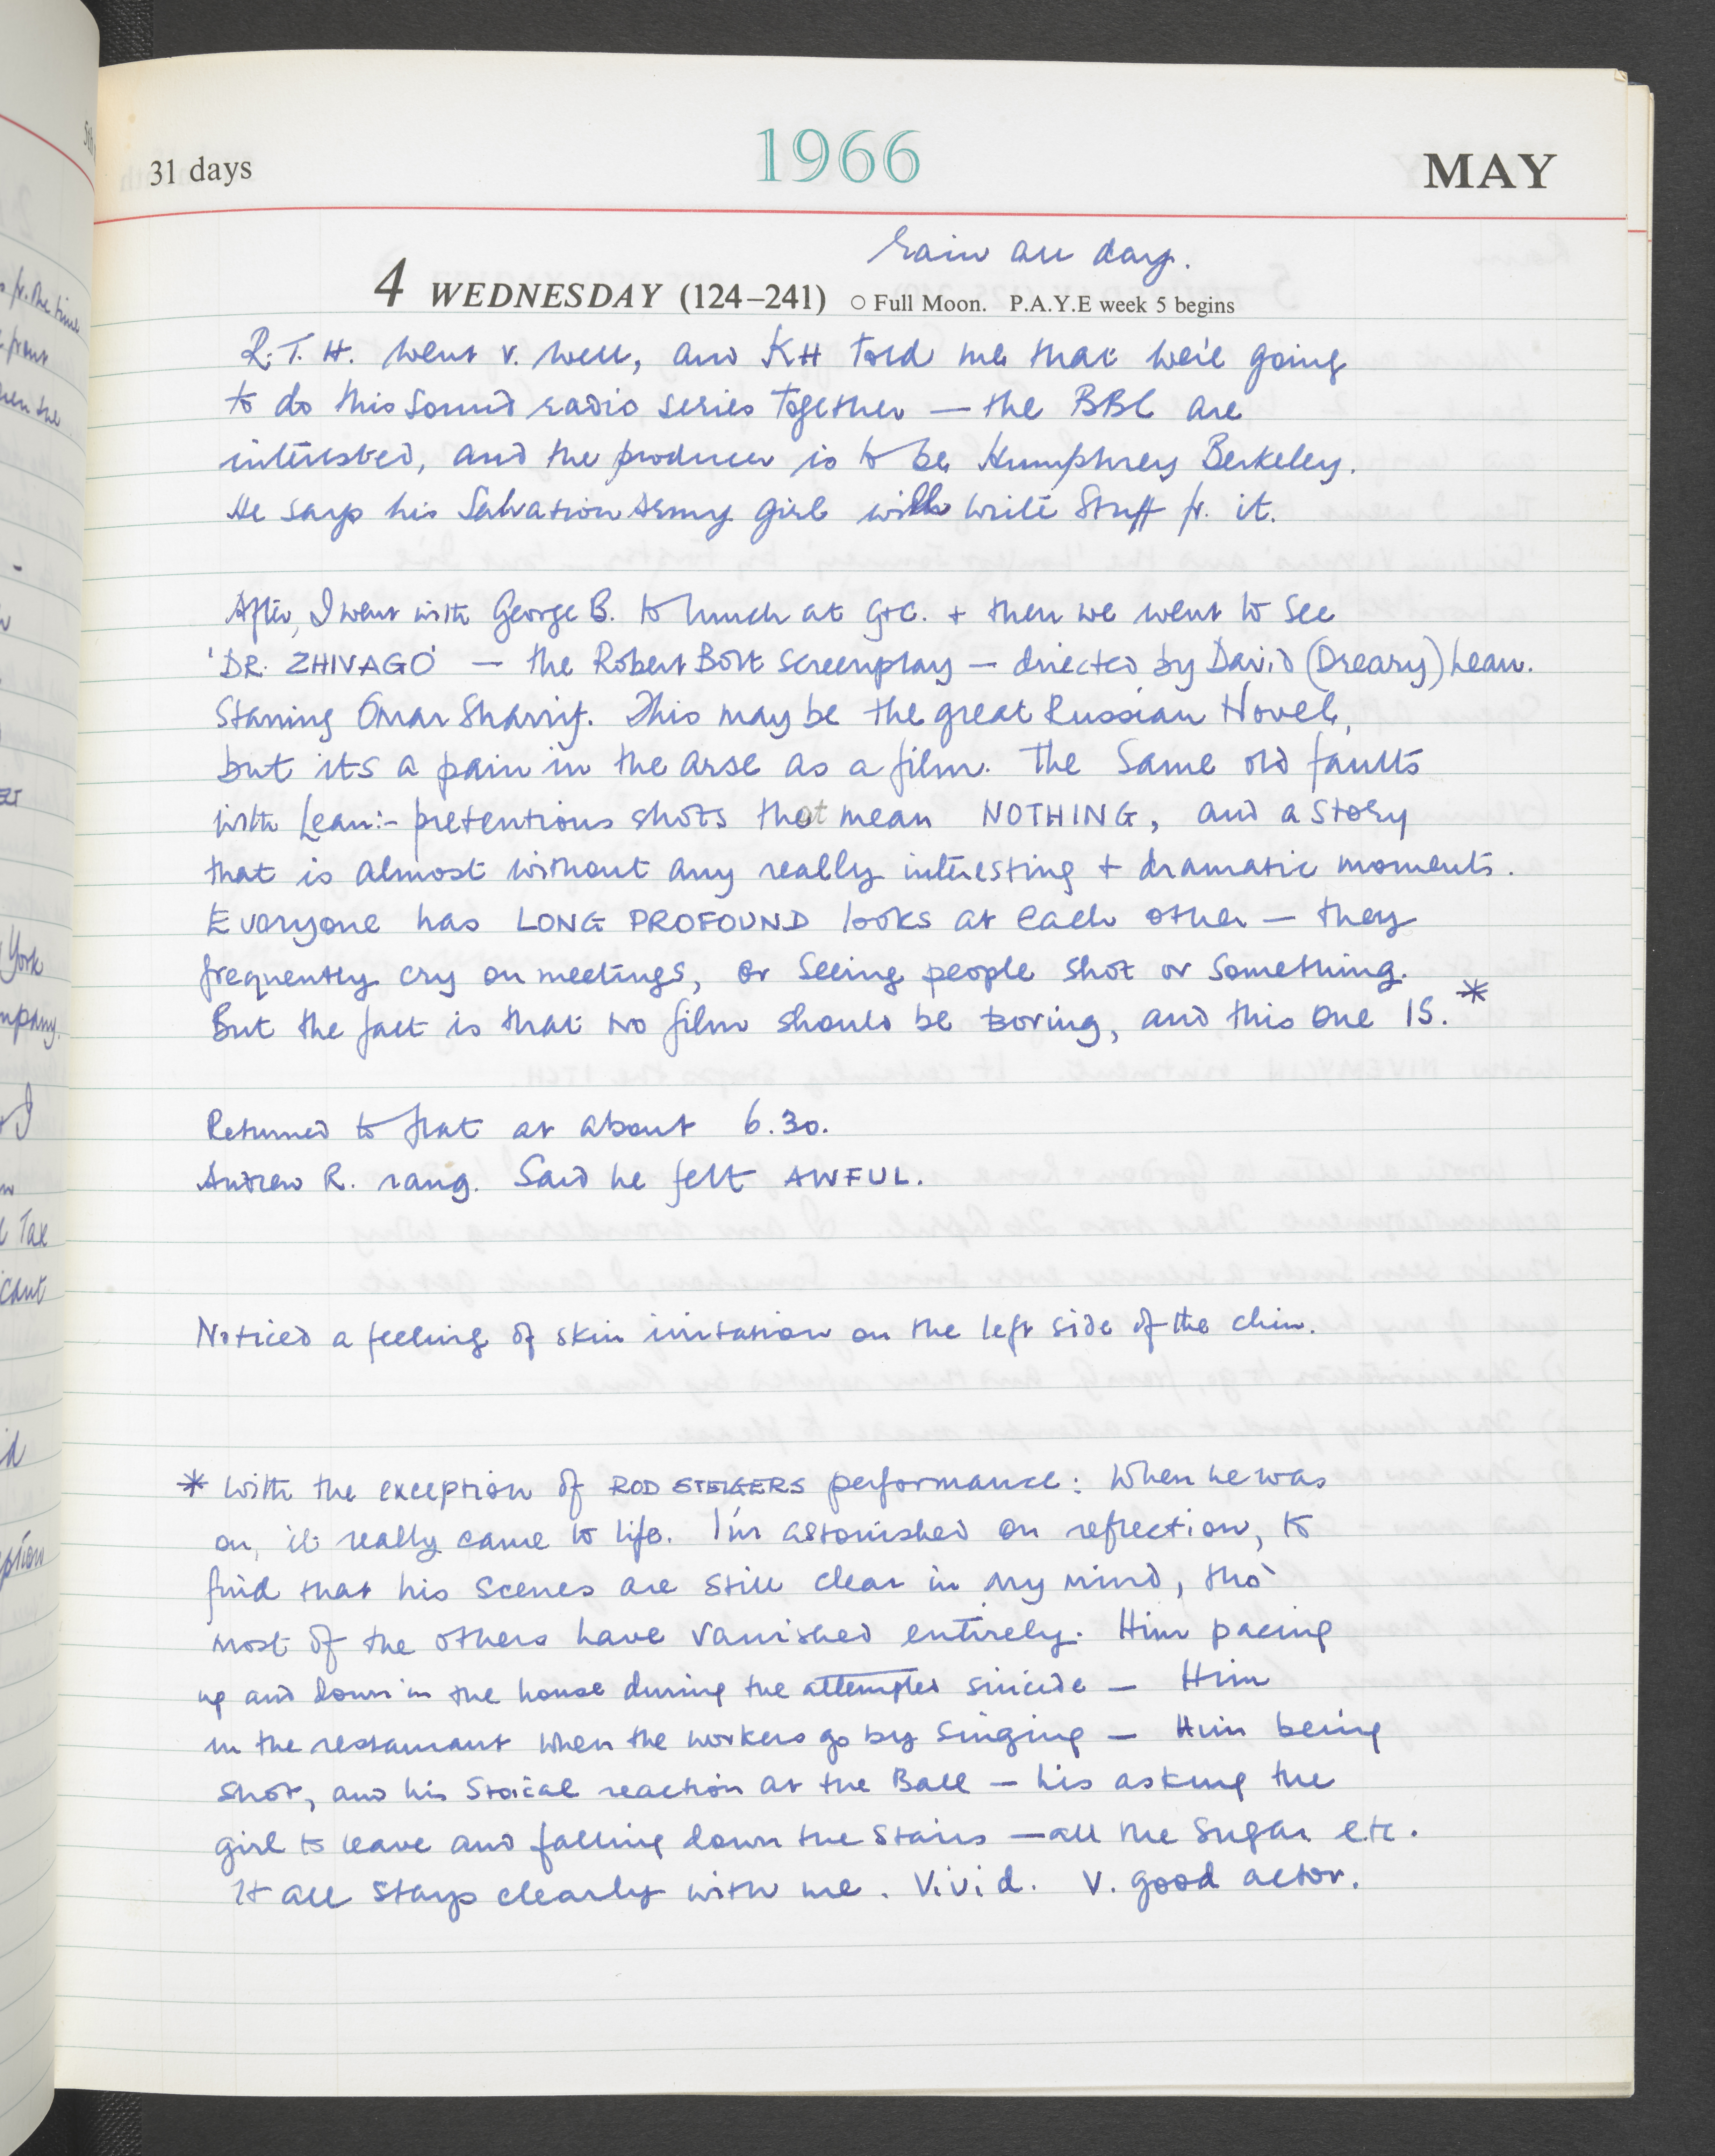 Page from Kenneth Williams' diary from 4 May 1966, courtesy of the Kenneth Williams estate